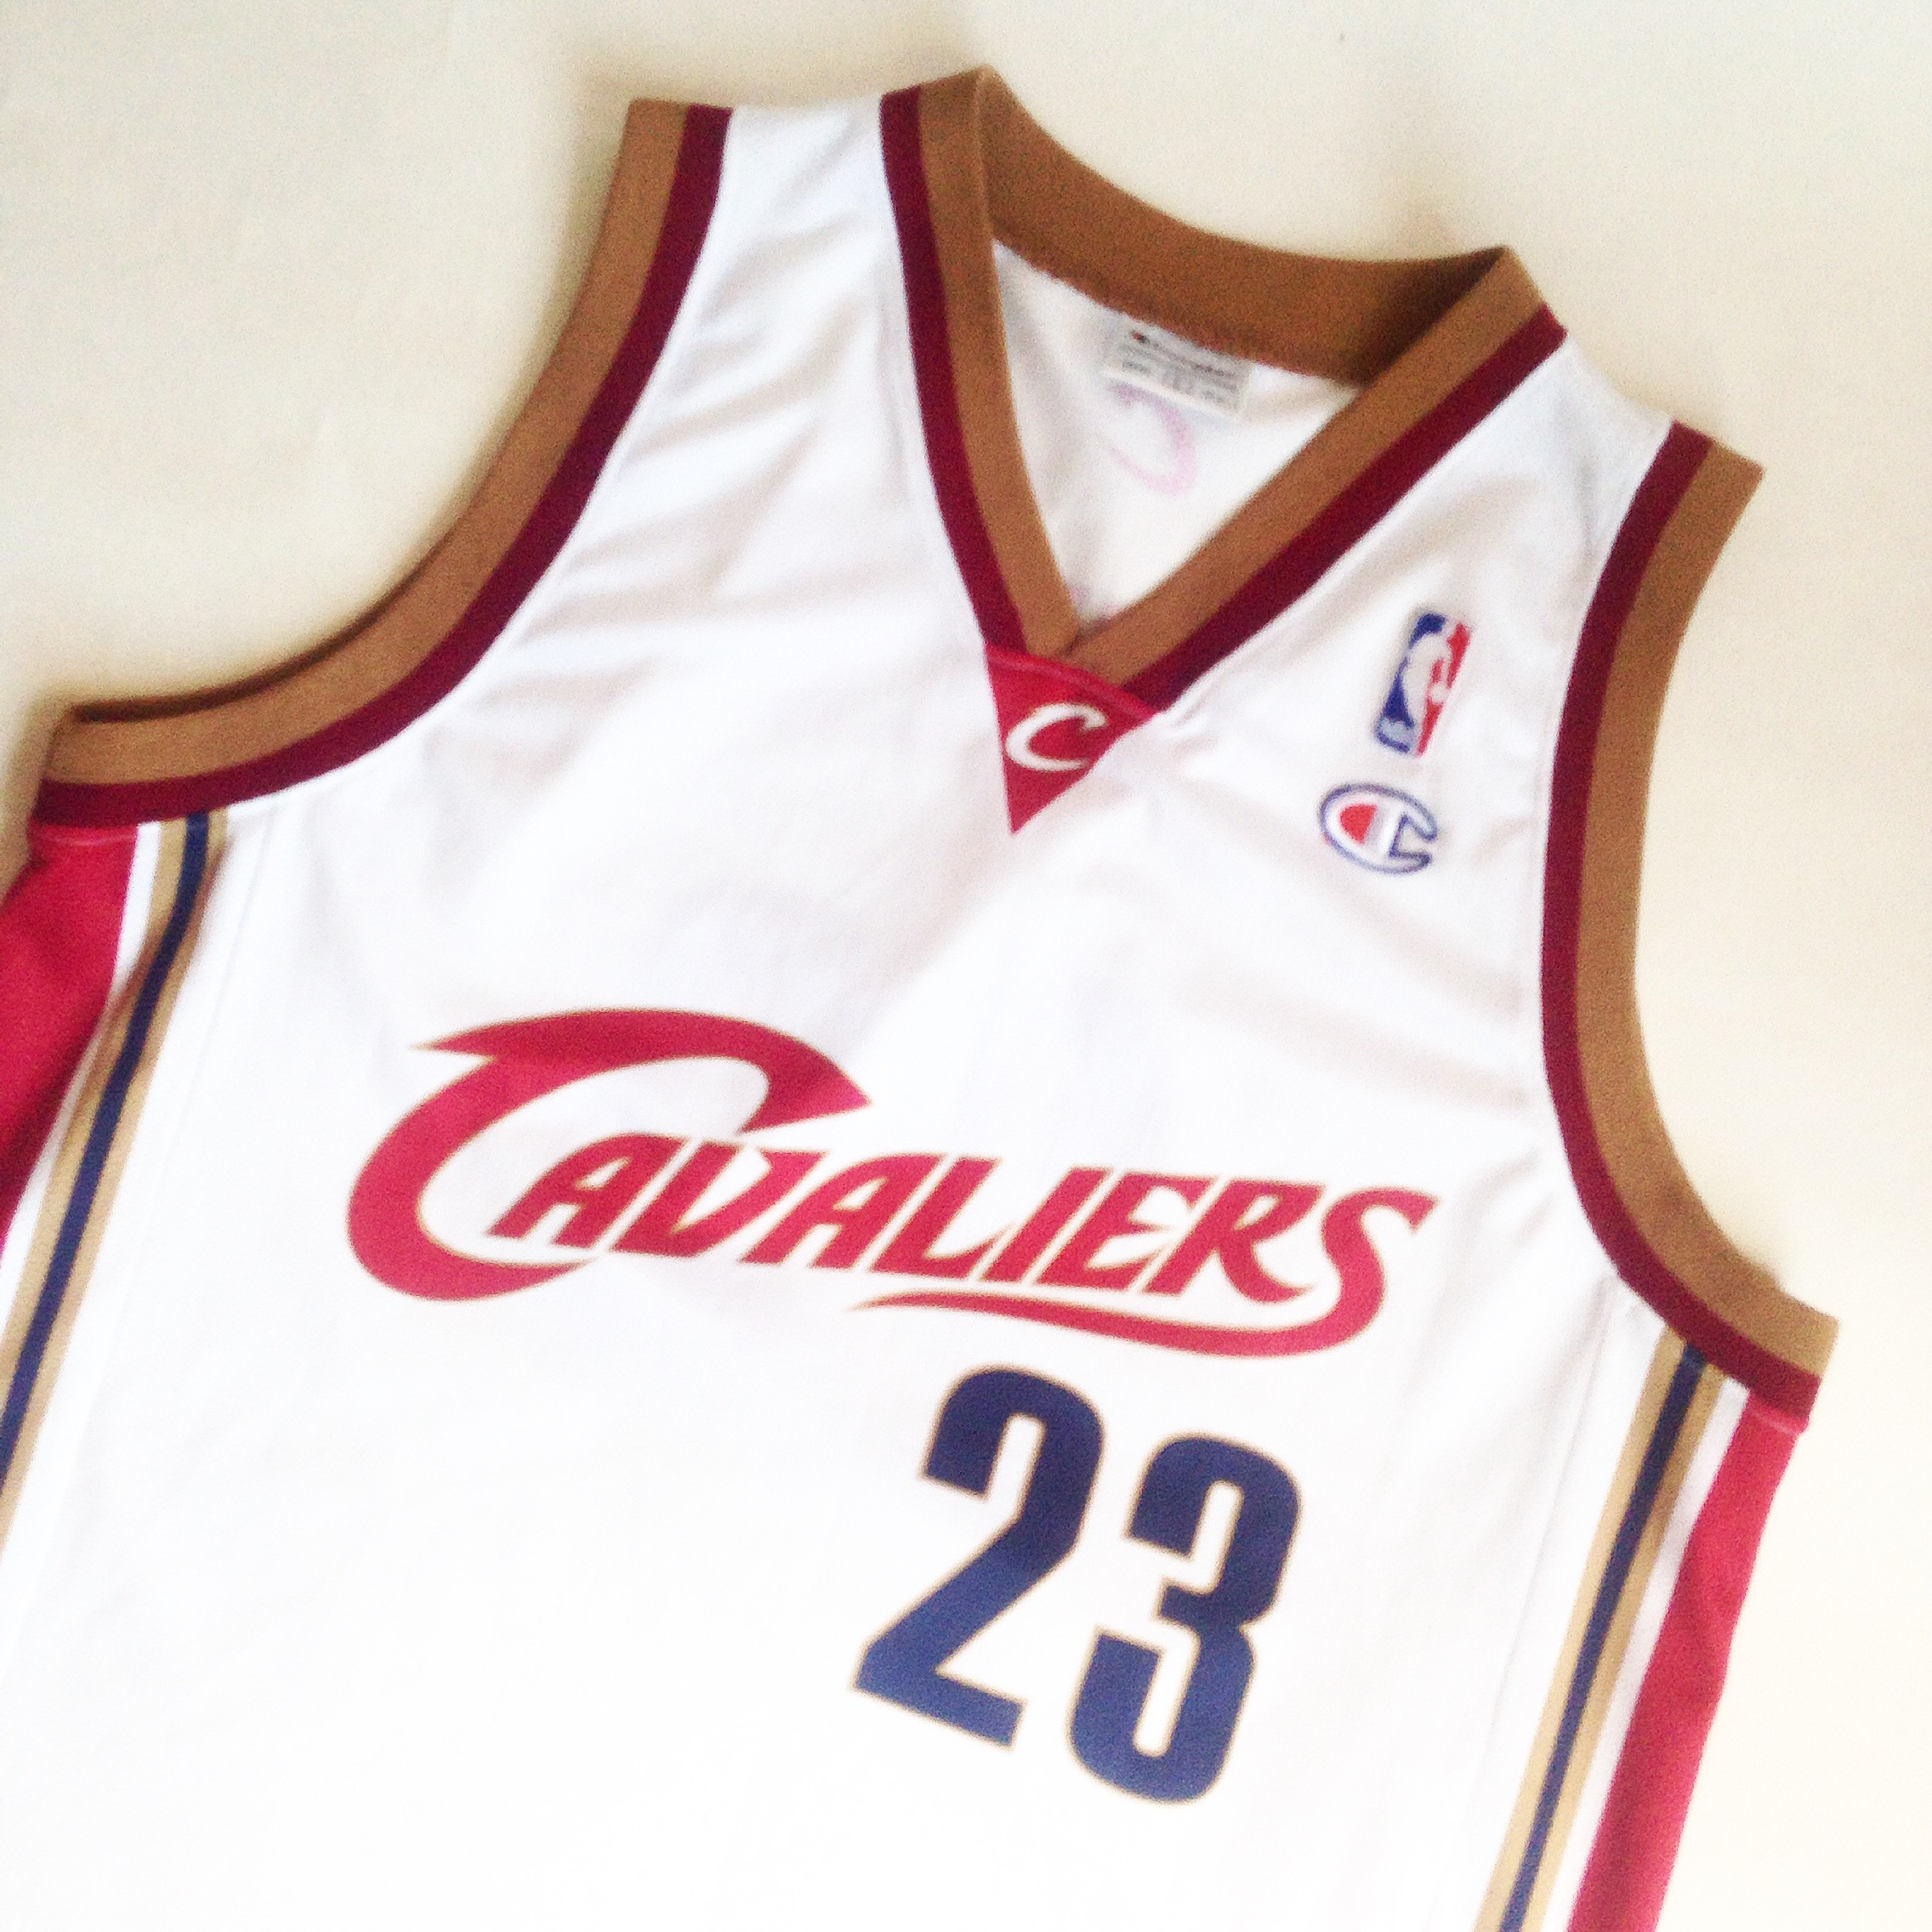 competitive price f656d 2155f Lebron James 23 Cleveland cavaliers jersey 2003... - Depop